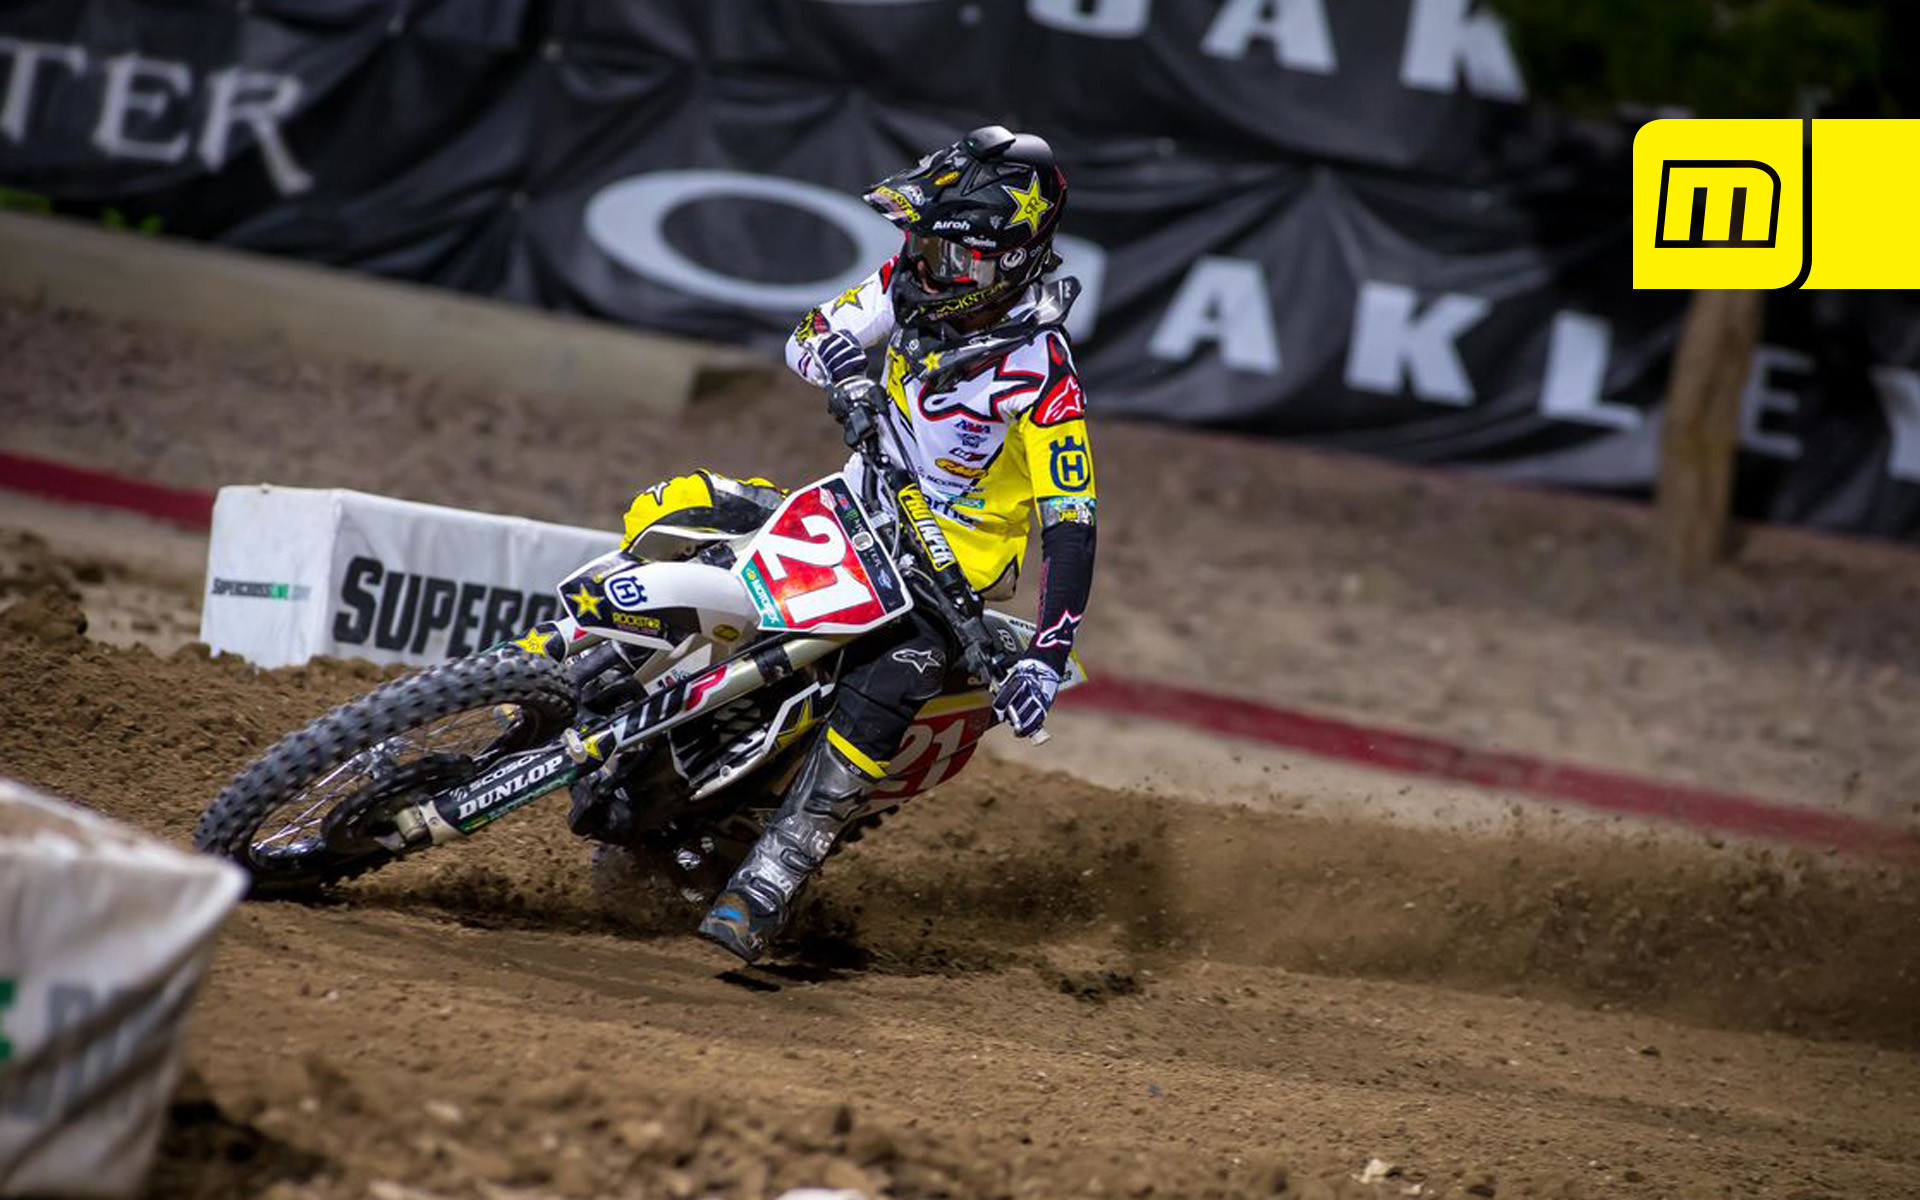 Res: 1920x1200, Clean up your desktop with this fresh Wallpaper of Jason Anderson (Rockstar  Energy Husqvarna Factory Racing) charging his way to the 2018 Monster Energy  AMA ...